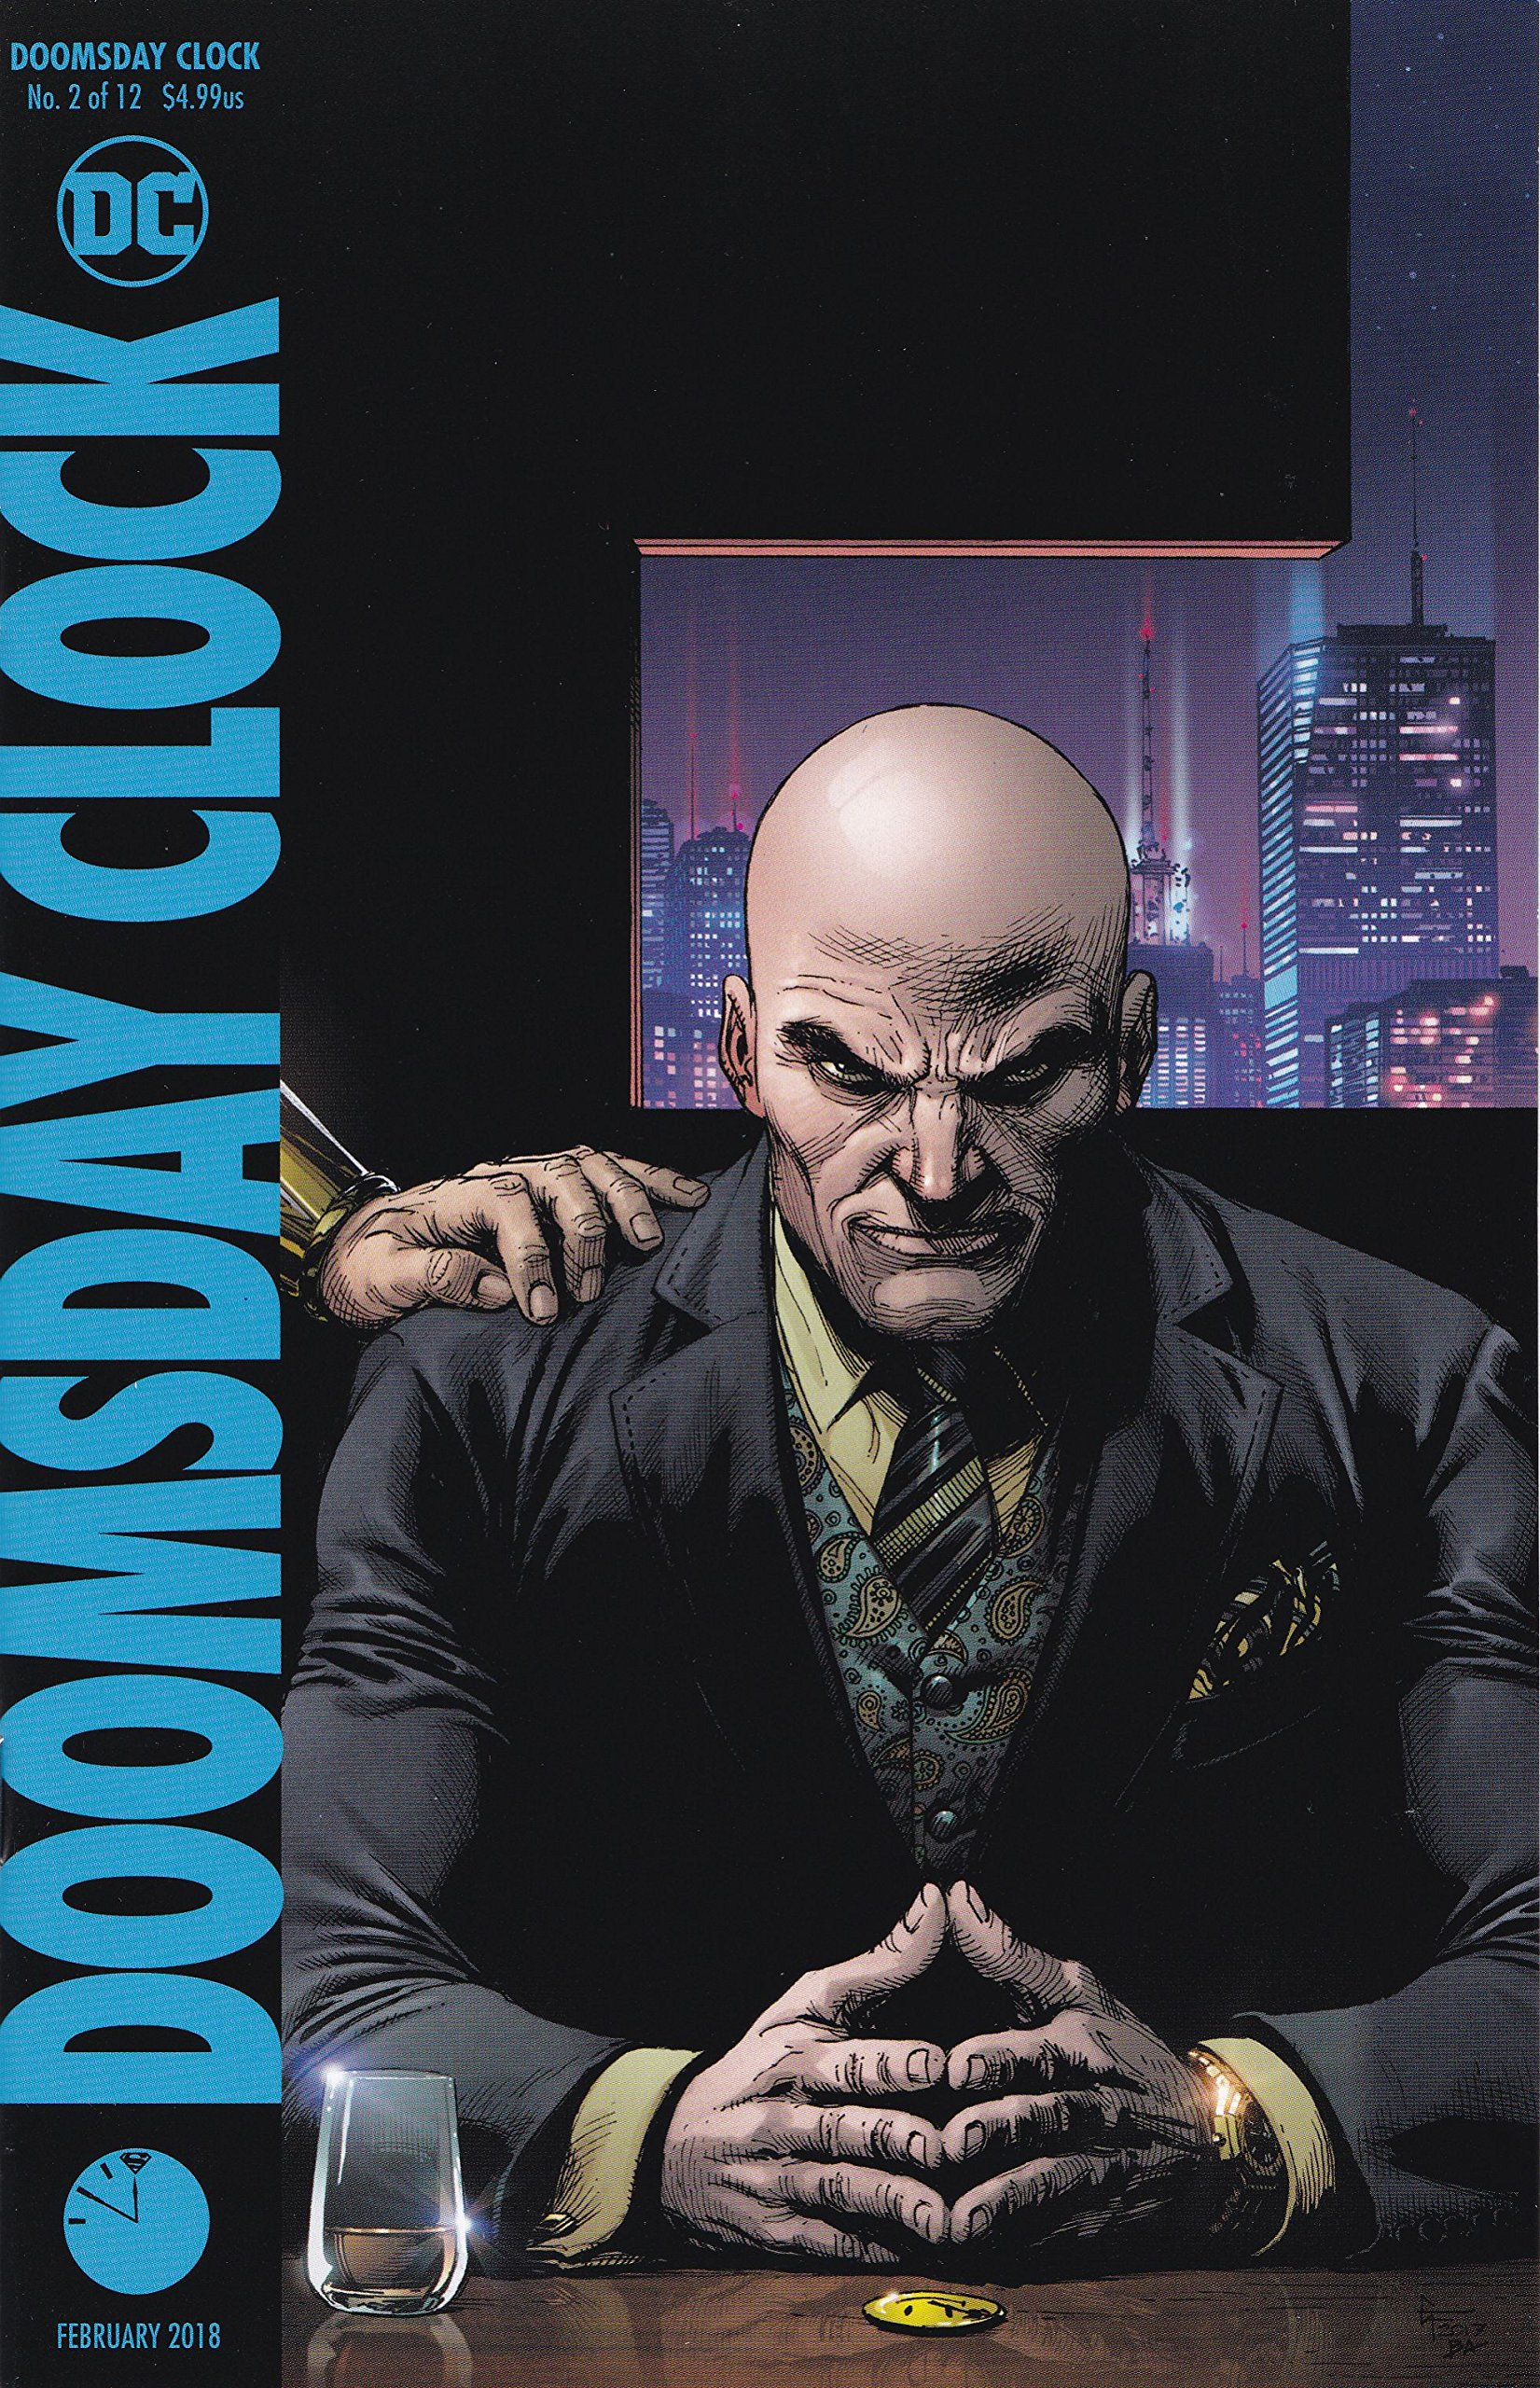 Doomsday Clock 2 Of 12 Frank Variant Release Date 12 27 17